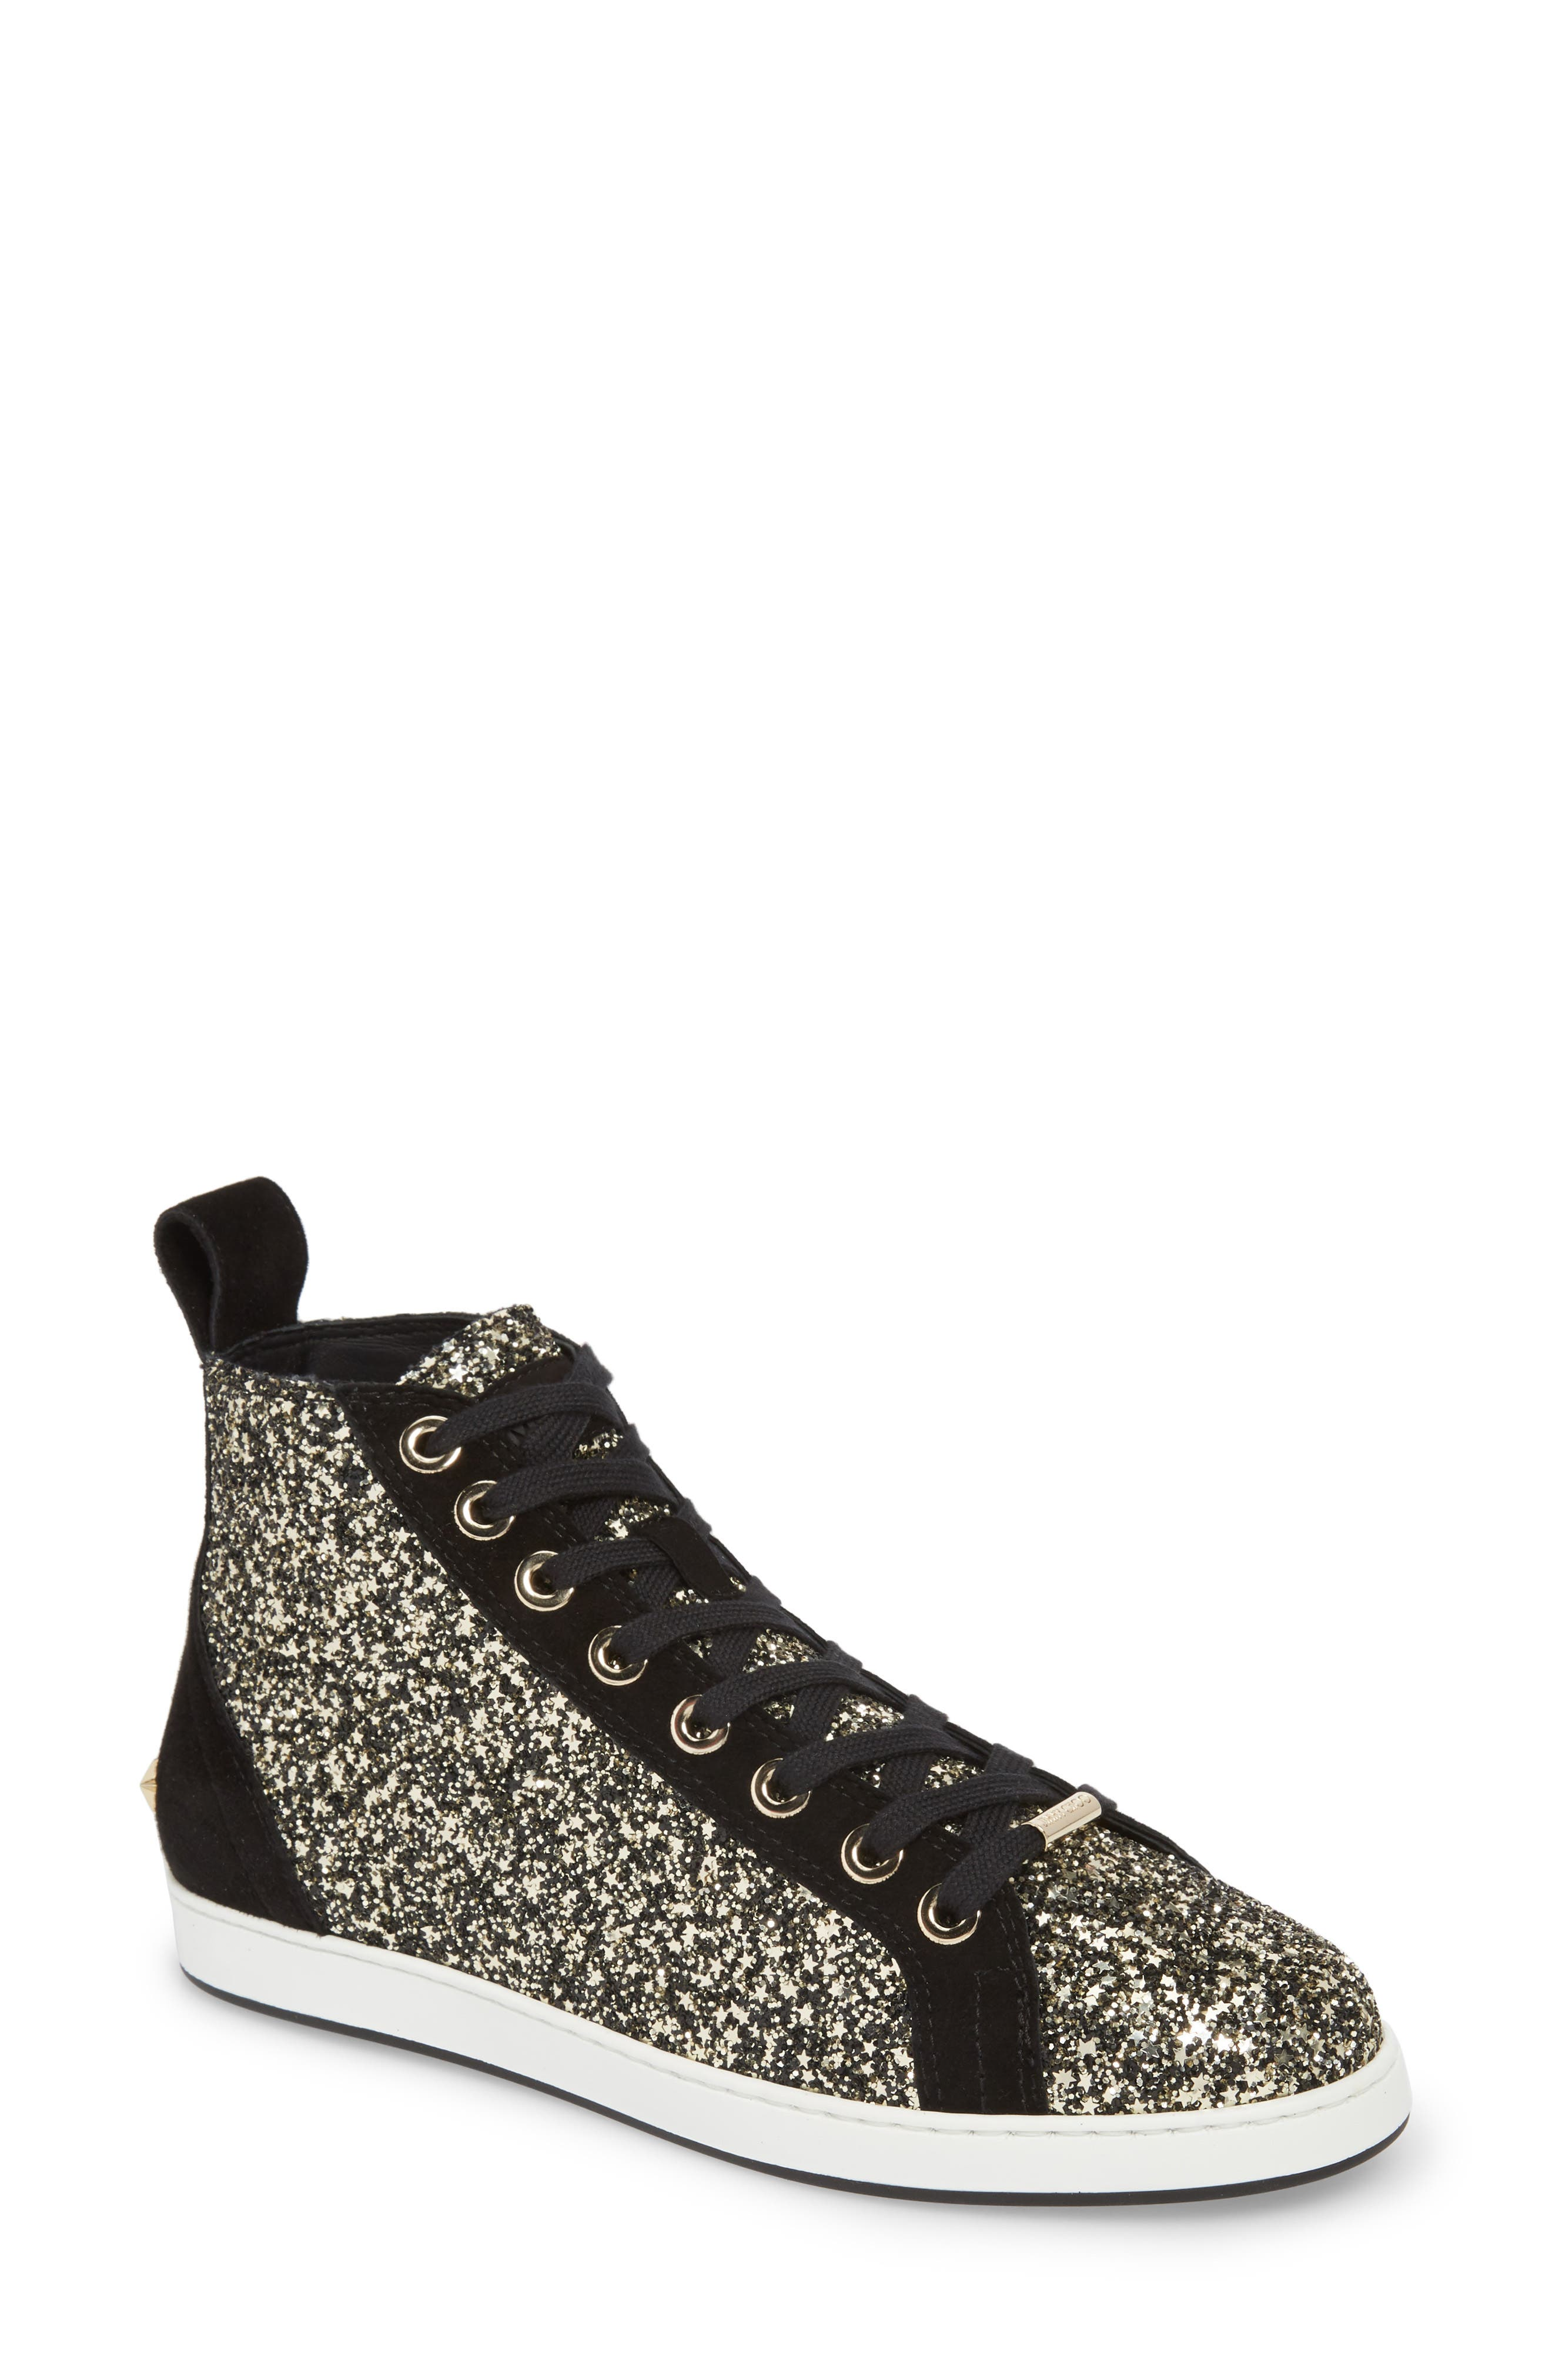 Jimmy Choo Colt Glitter High Top Sneaker (Women)